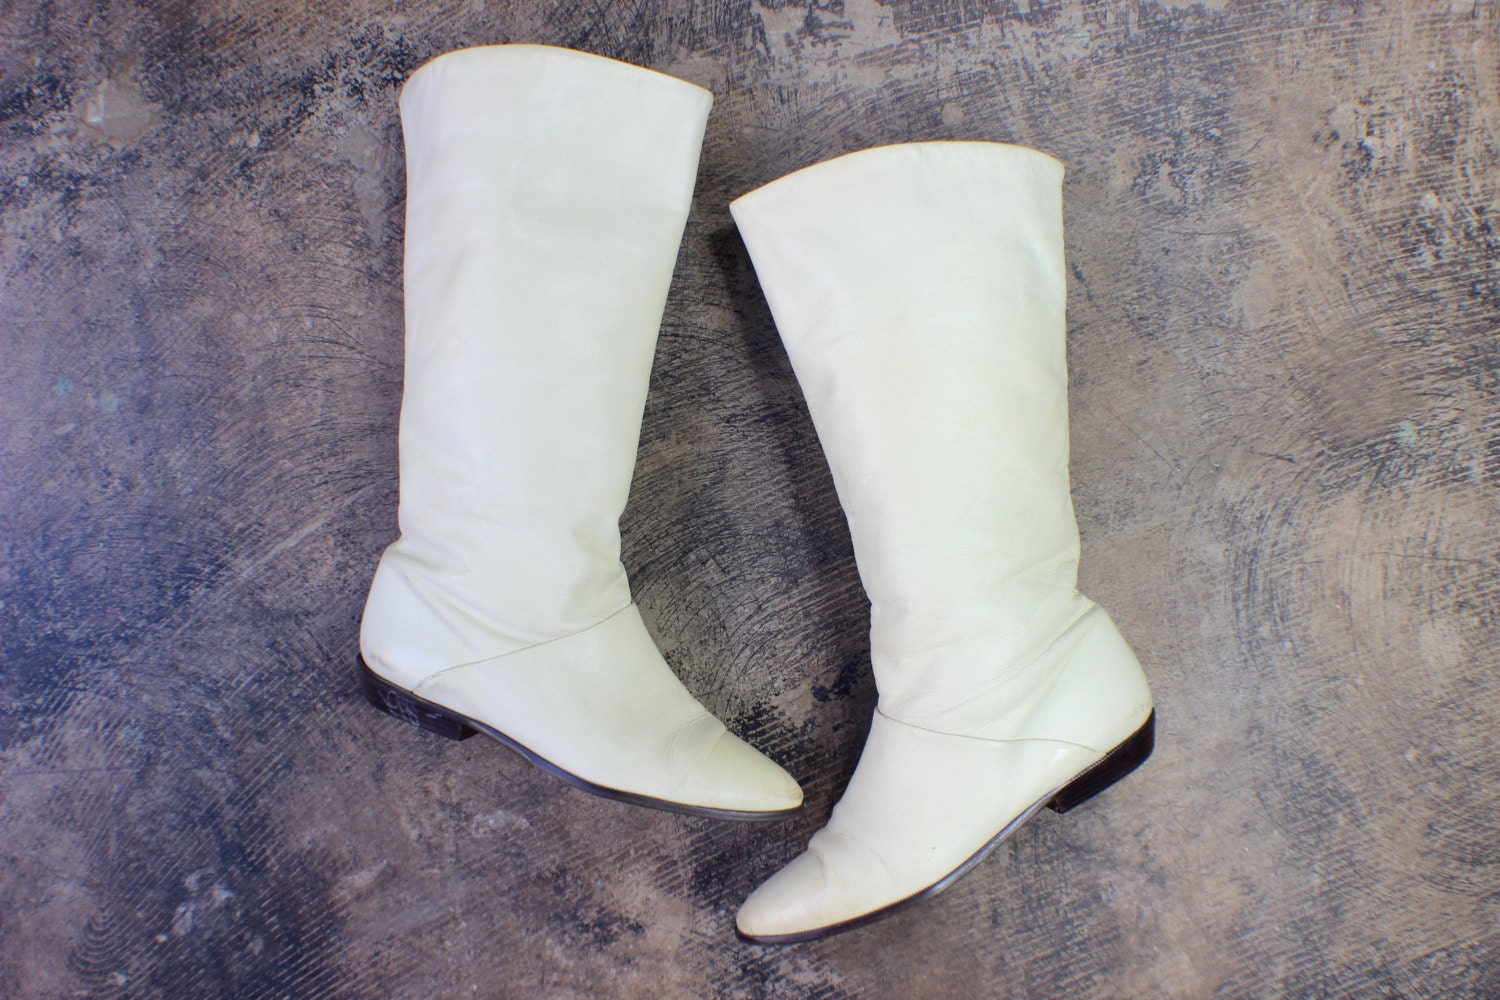 6 1 2 to 7 ivory leather boots vintage knee high flat boots